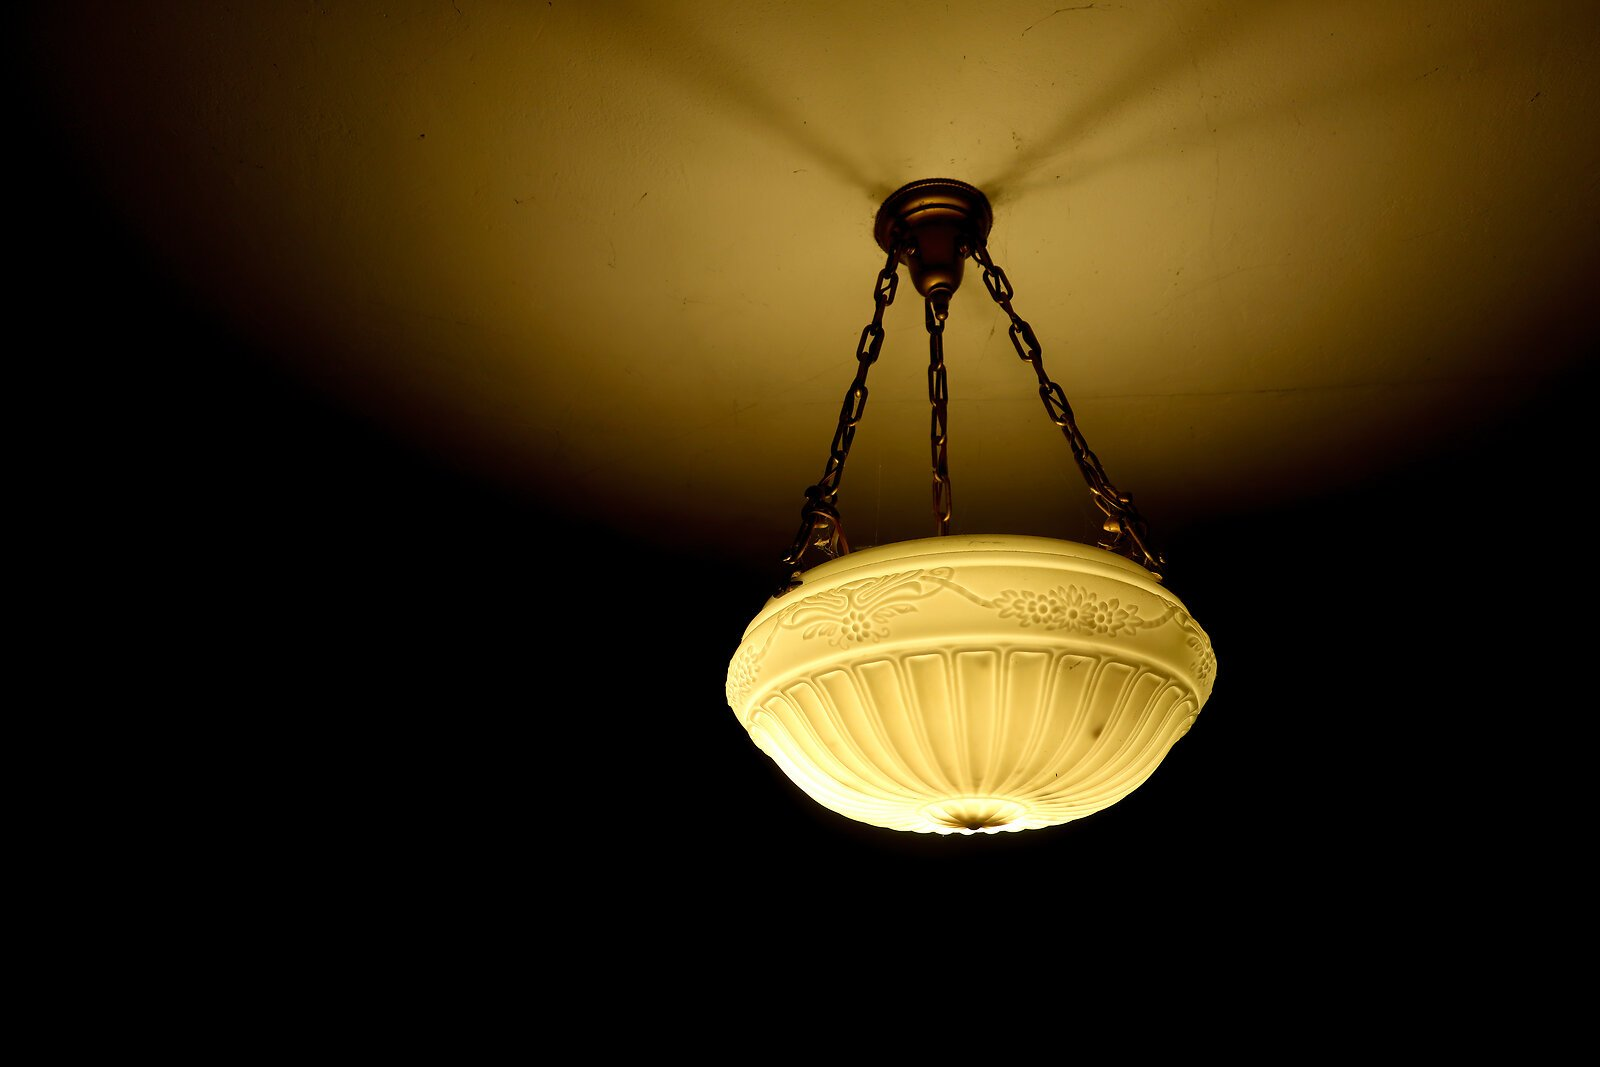 G1x_Nov22_Hanging_light_fixture.jpg